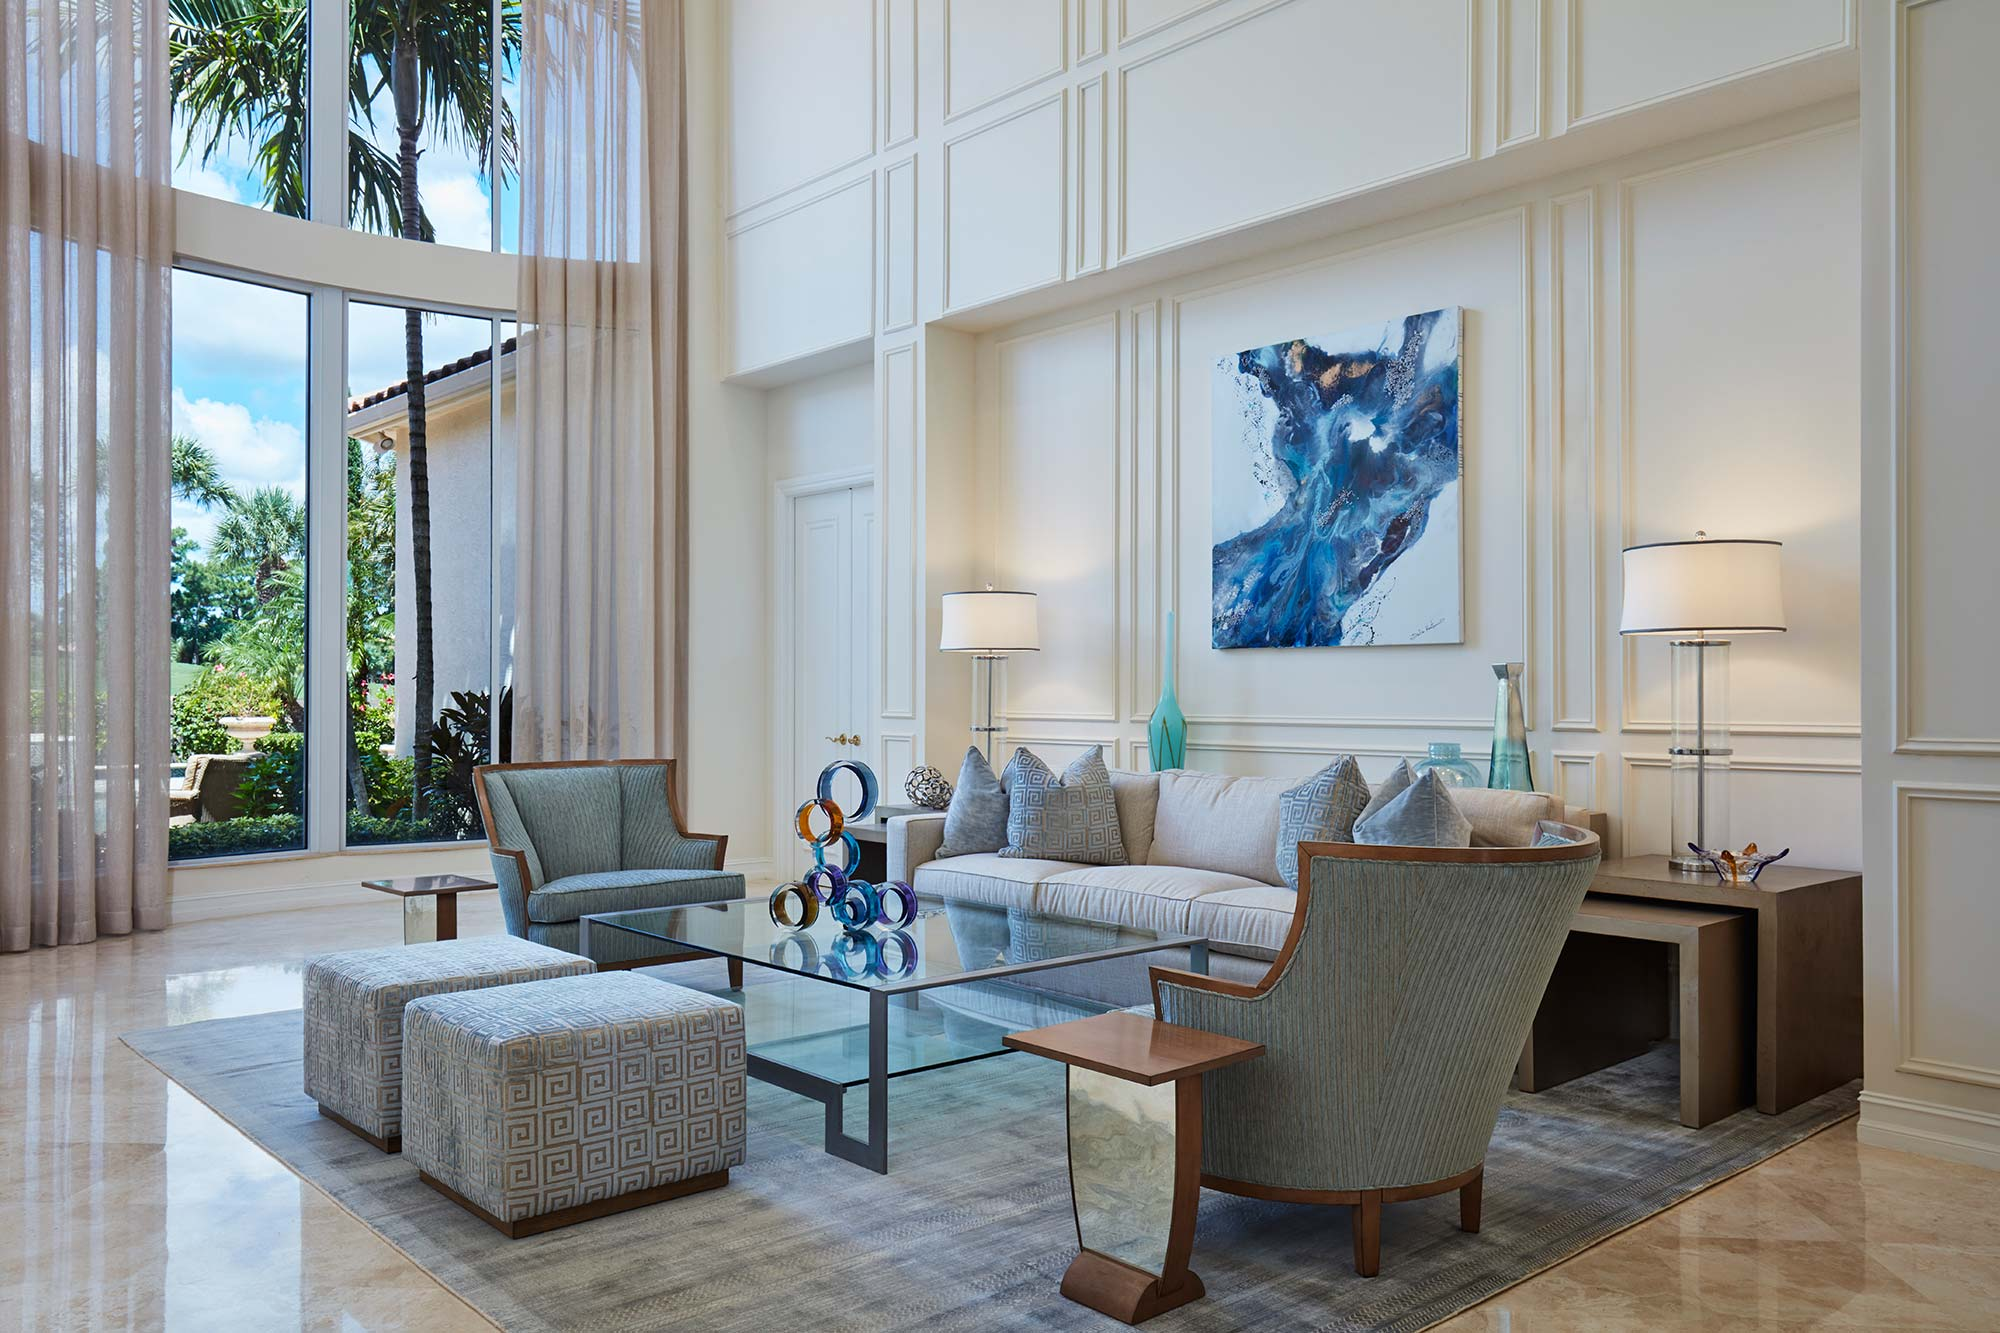 West Palm Beach Interior designer